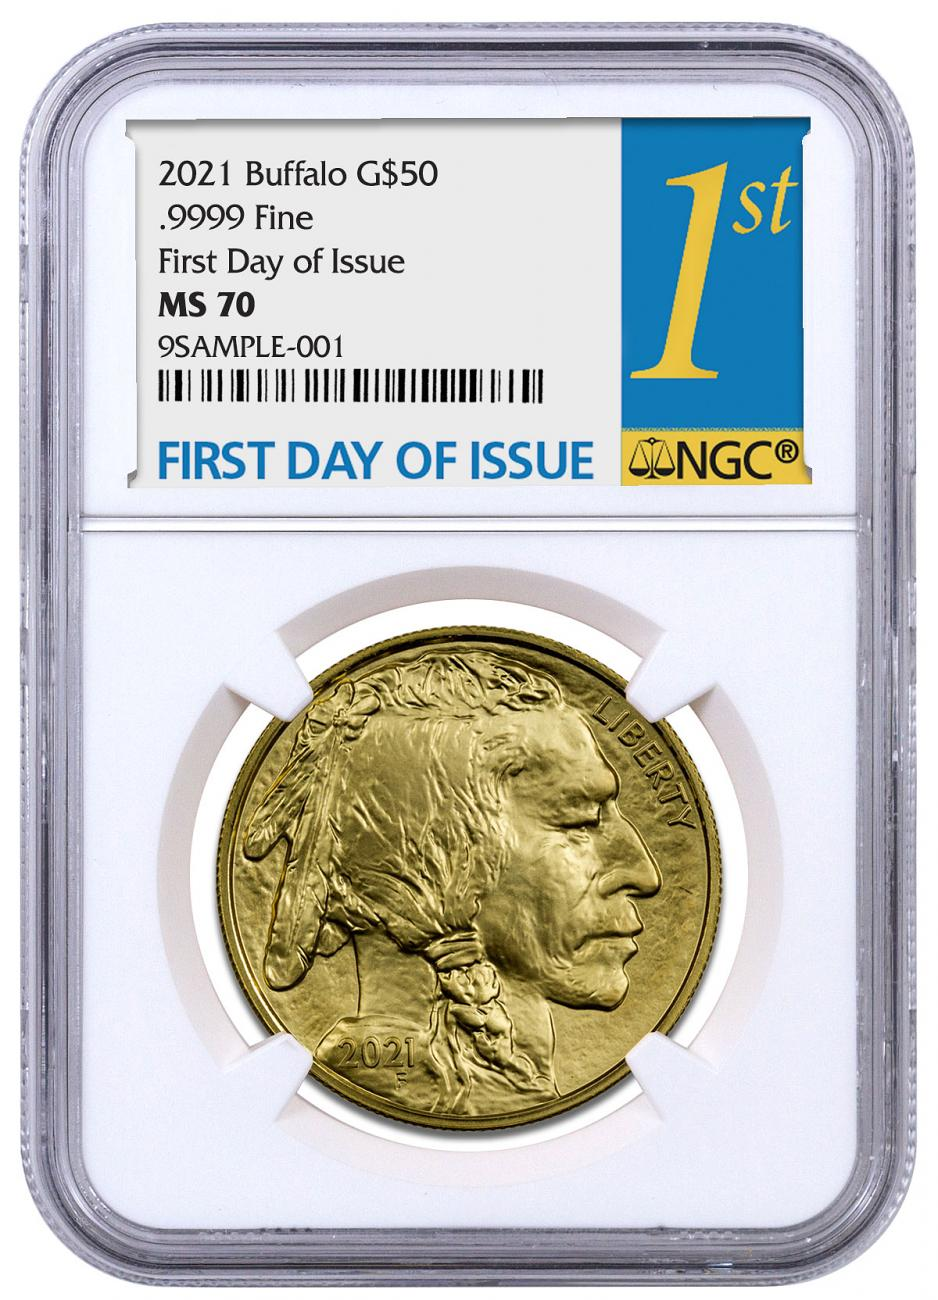 2021 1 oz Gold Buffalo $50 Coin NGC MS70 FDI Gold 1st Day Label